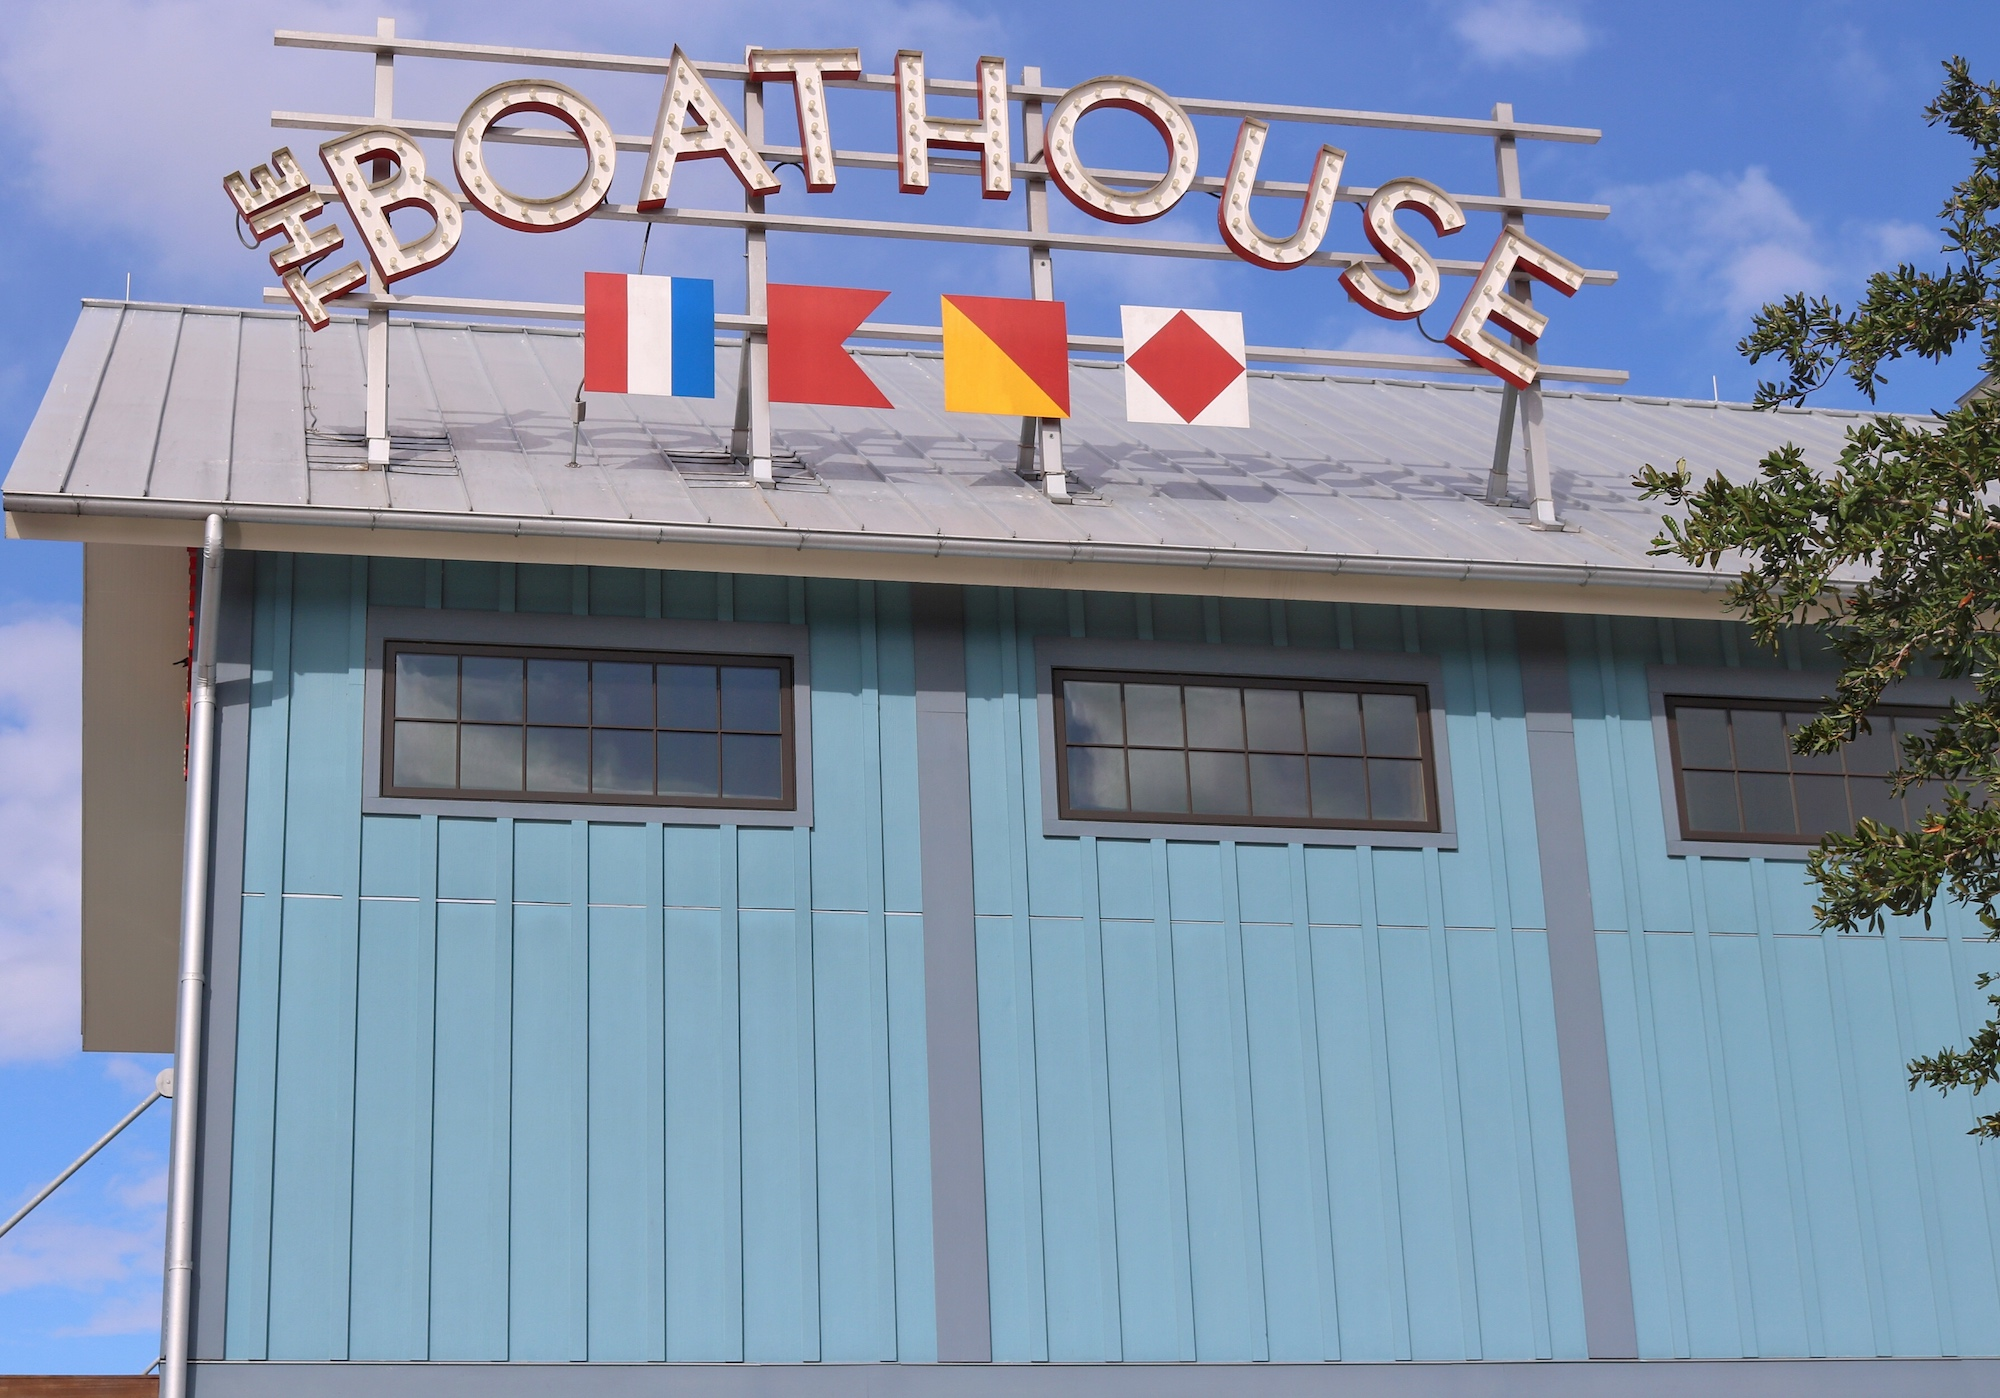 The Boathouse at Disney Springs